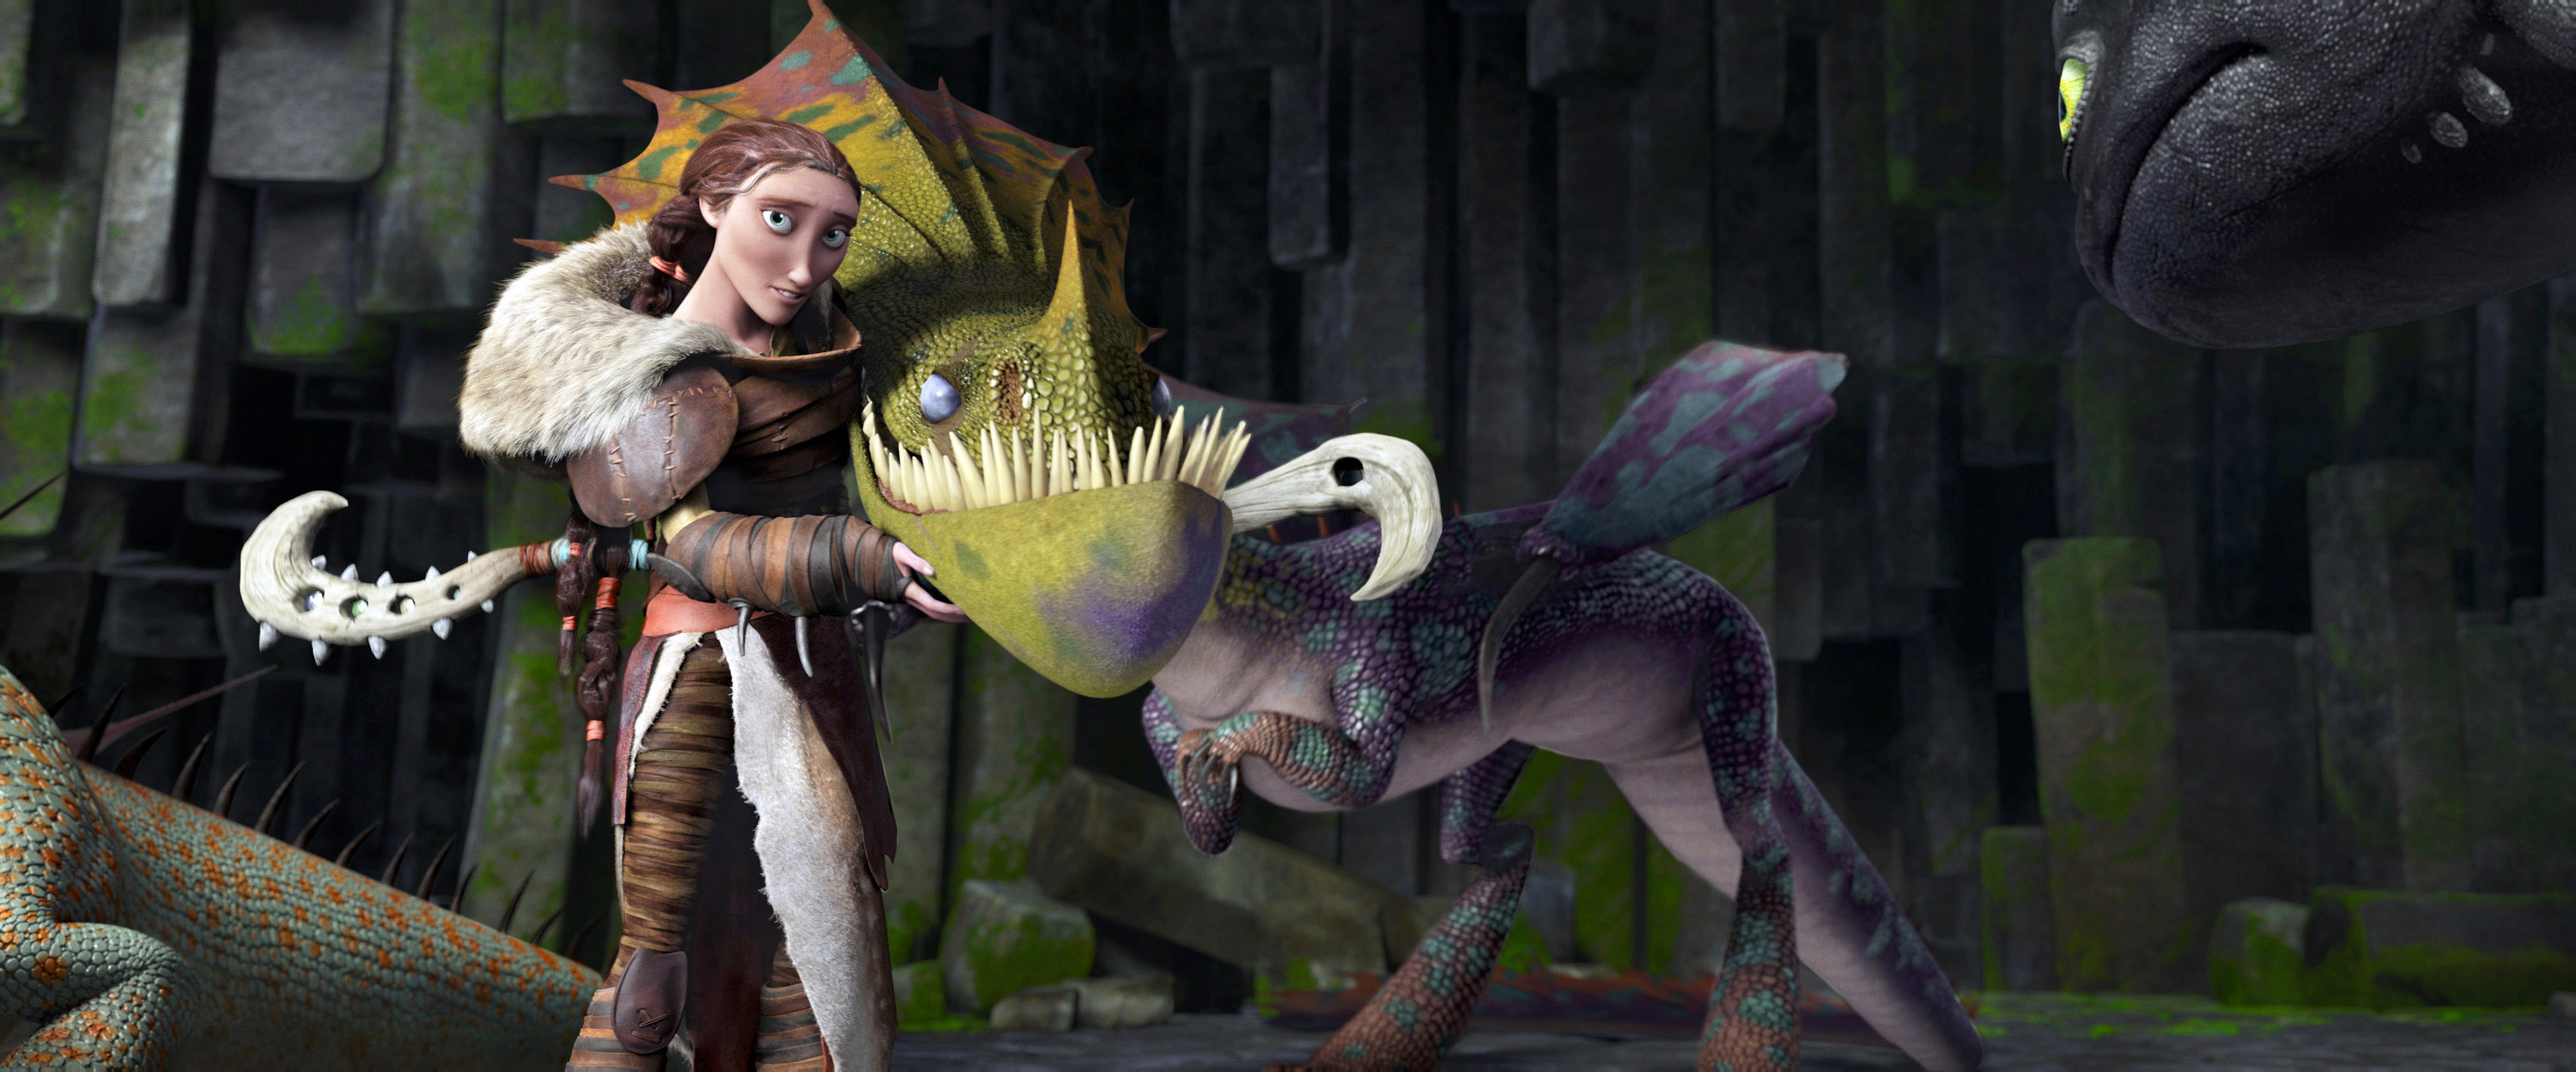 Valka standing with a dragon